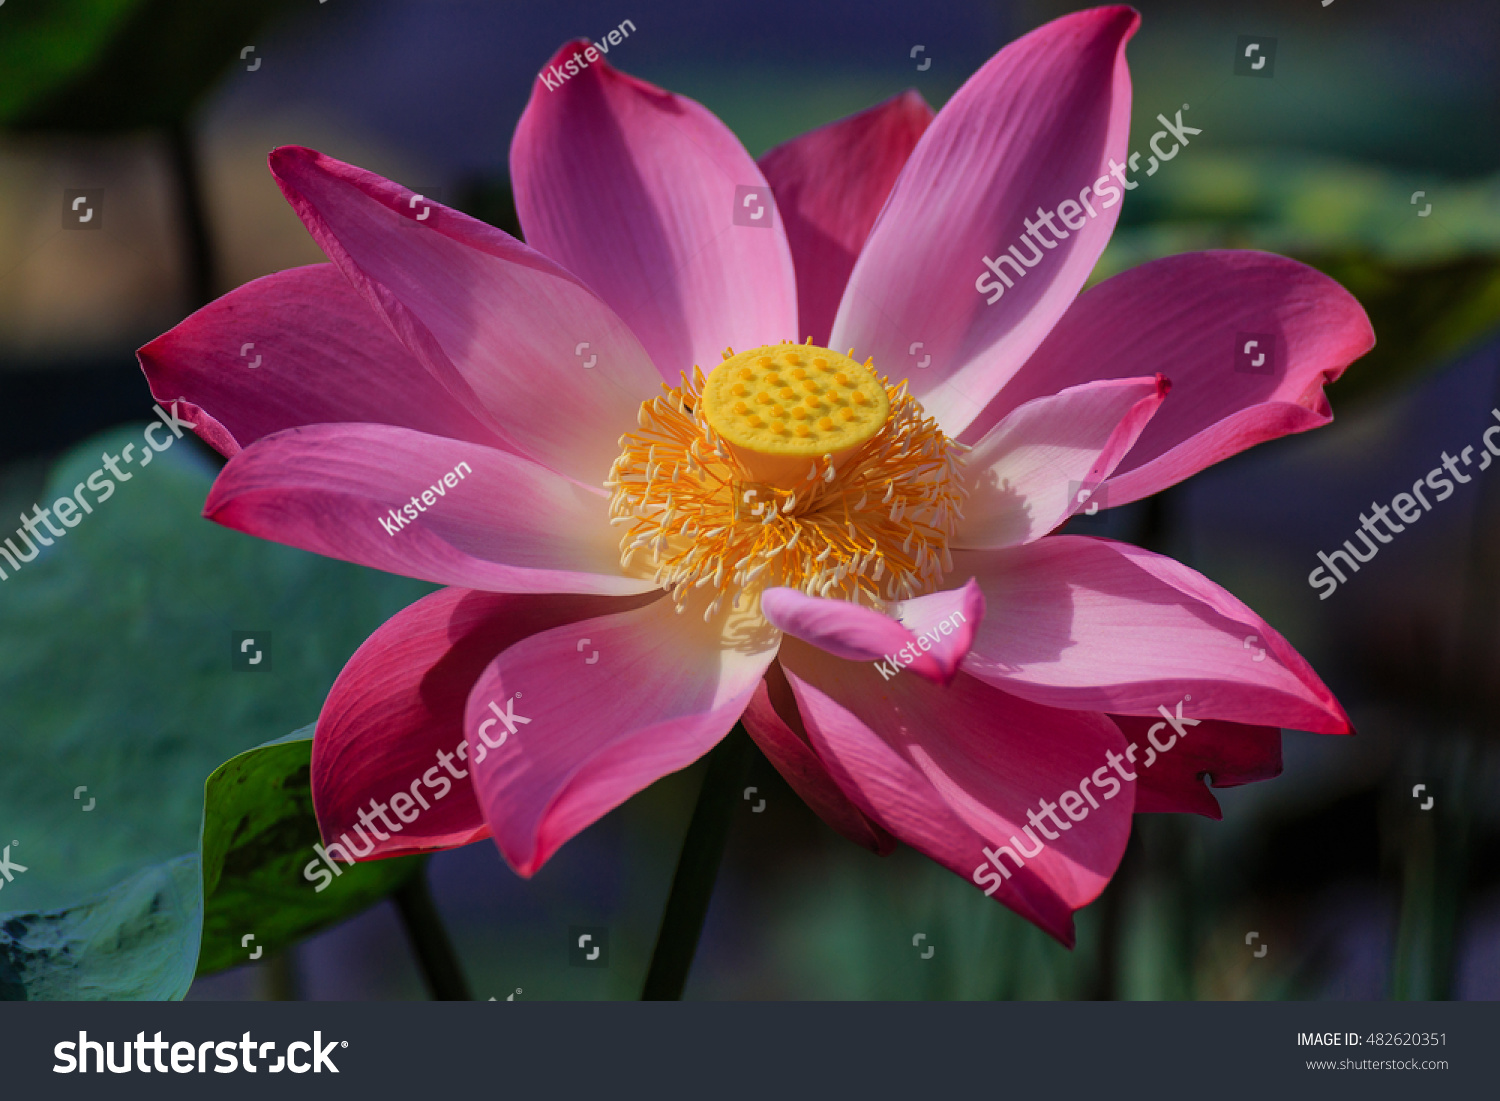 Lotus Flower Represents Creation Enlightenment Purity Stock Photo